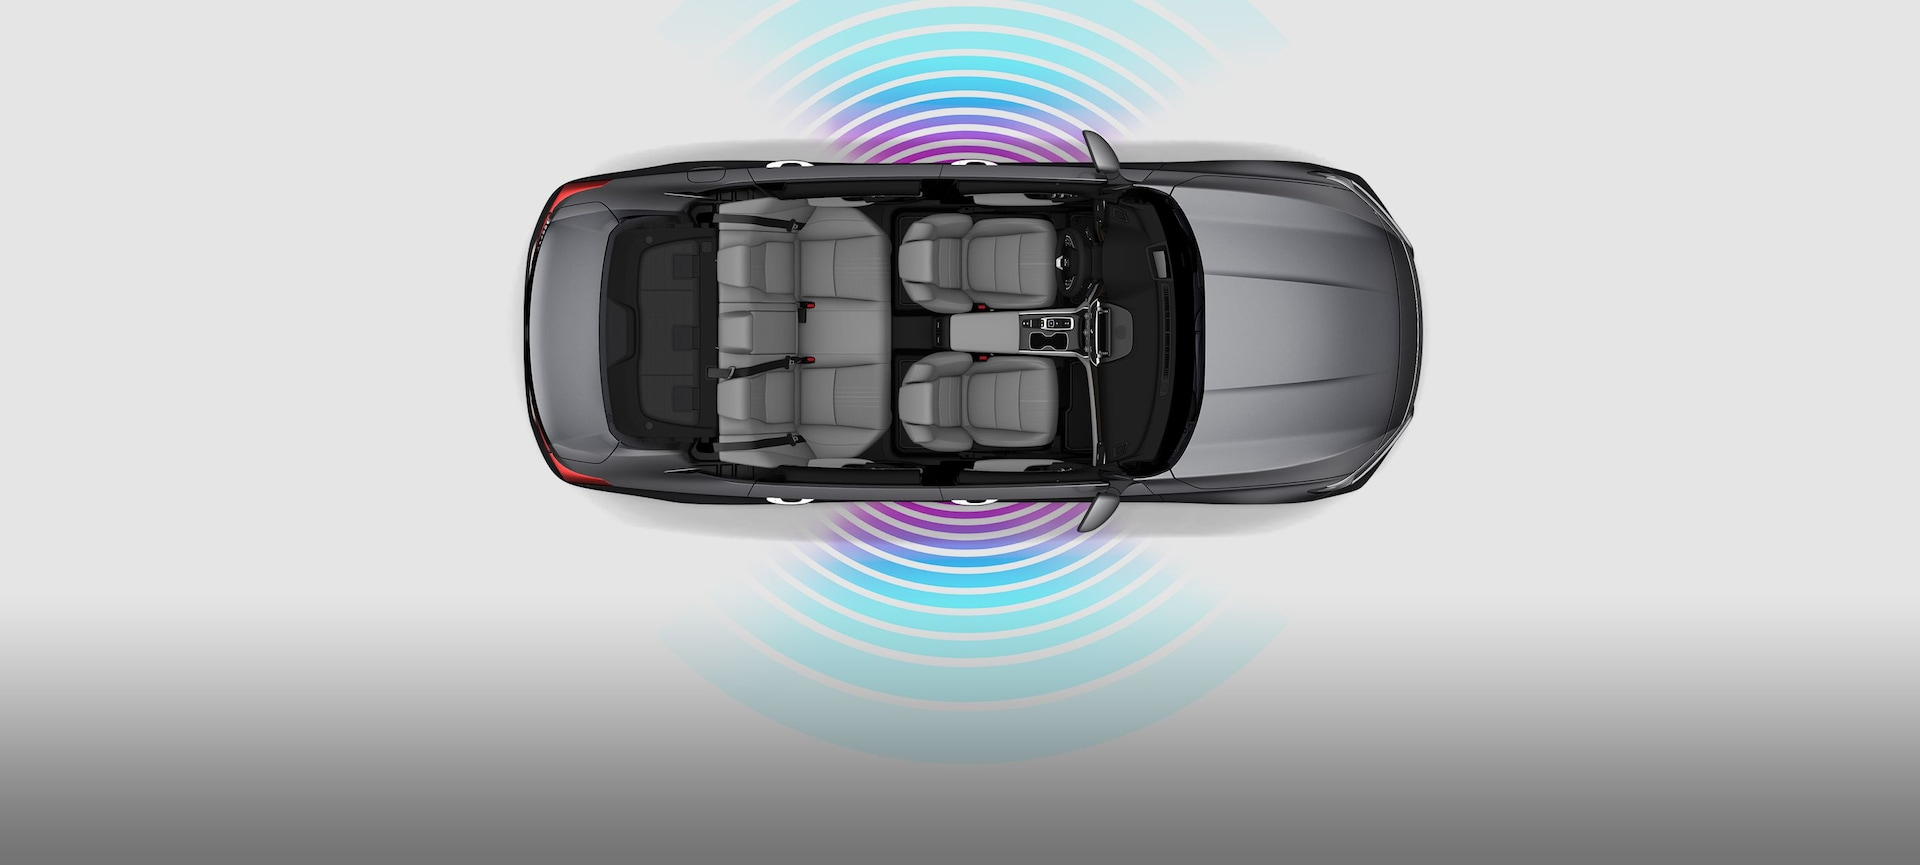 Overhead of 2019 Honda Accord Touring 2.0T with illustrated Wi-Fi signal waves.